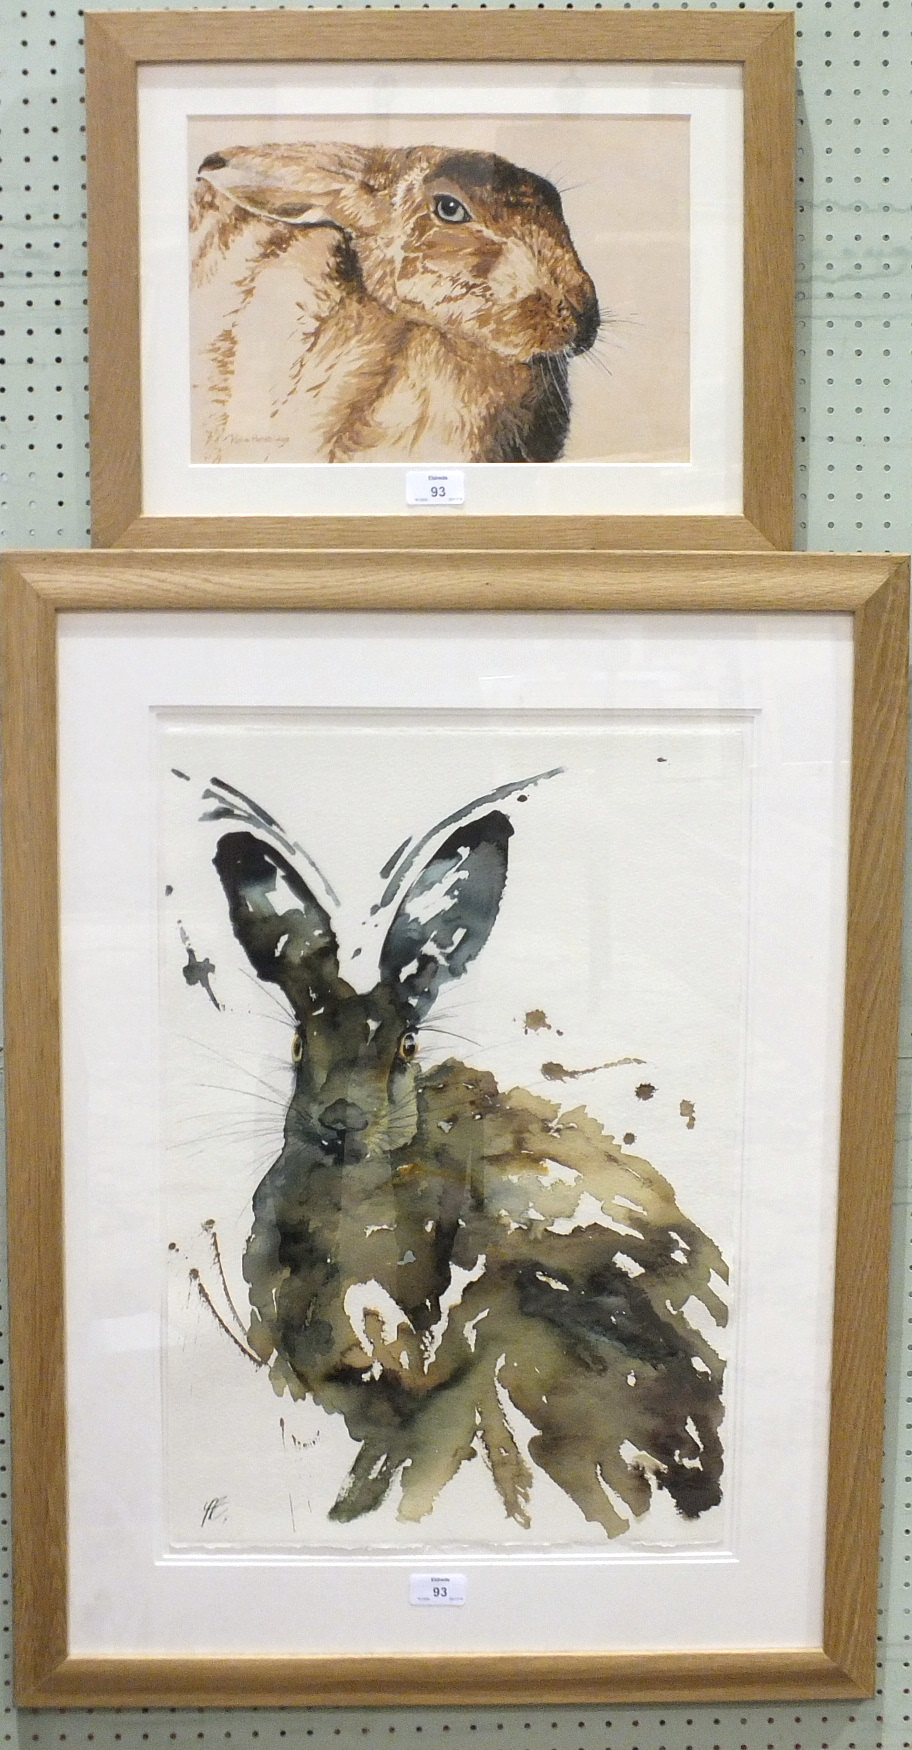 Lot 93 - Rosie Henstridge THE GENERAL Signed acrylic and ink, inscribed on label verso, 23 x 32cm and a